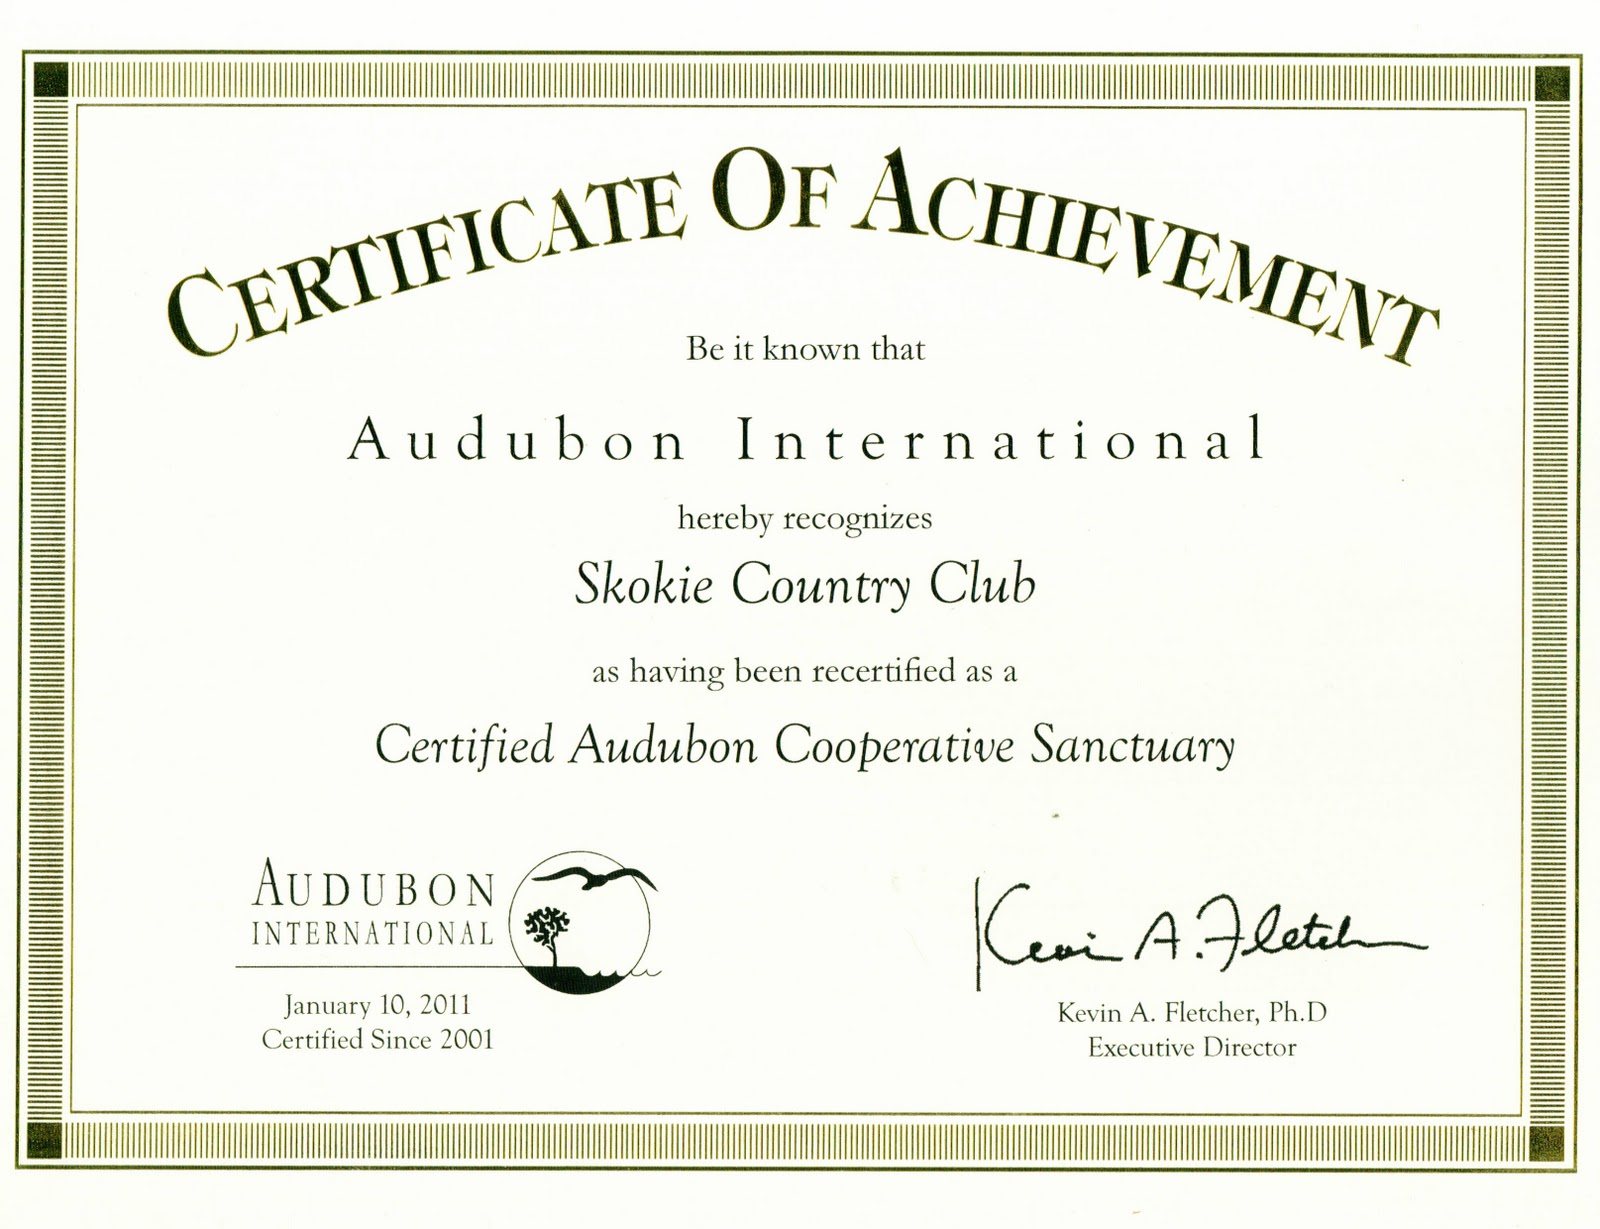 cross country certificate templates free - skokie country club golf course management skokie cc